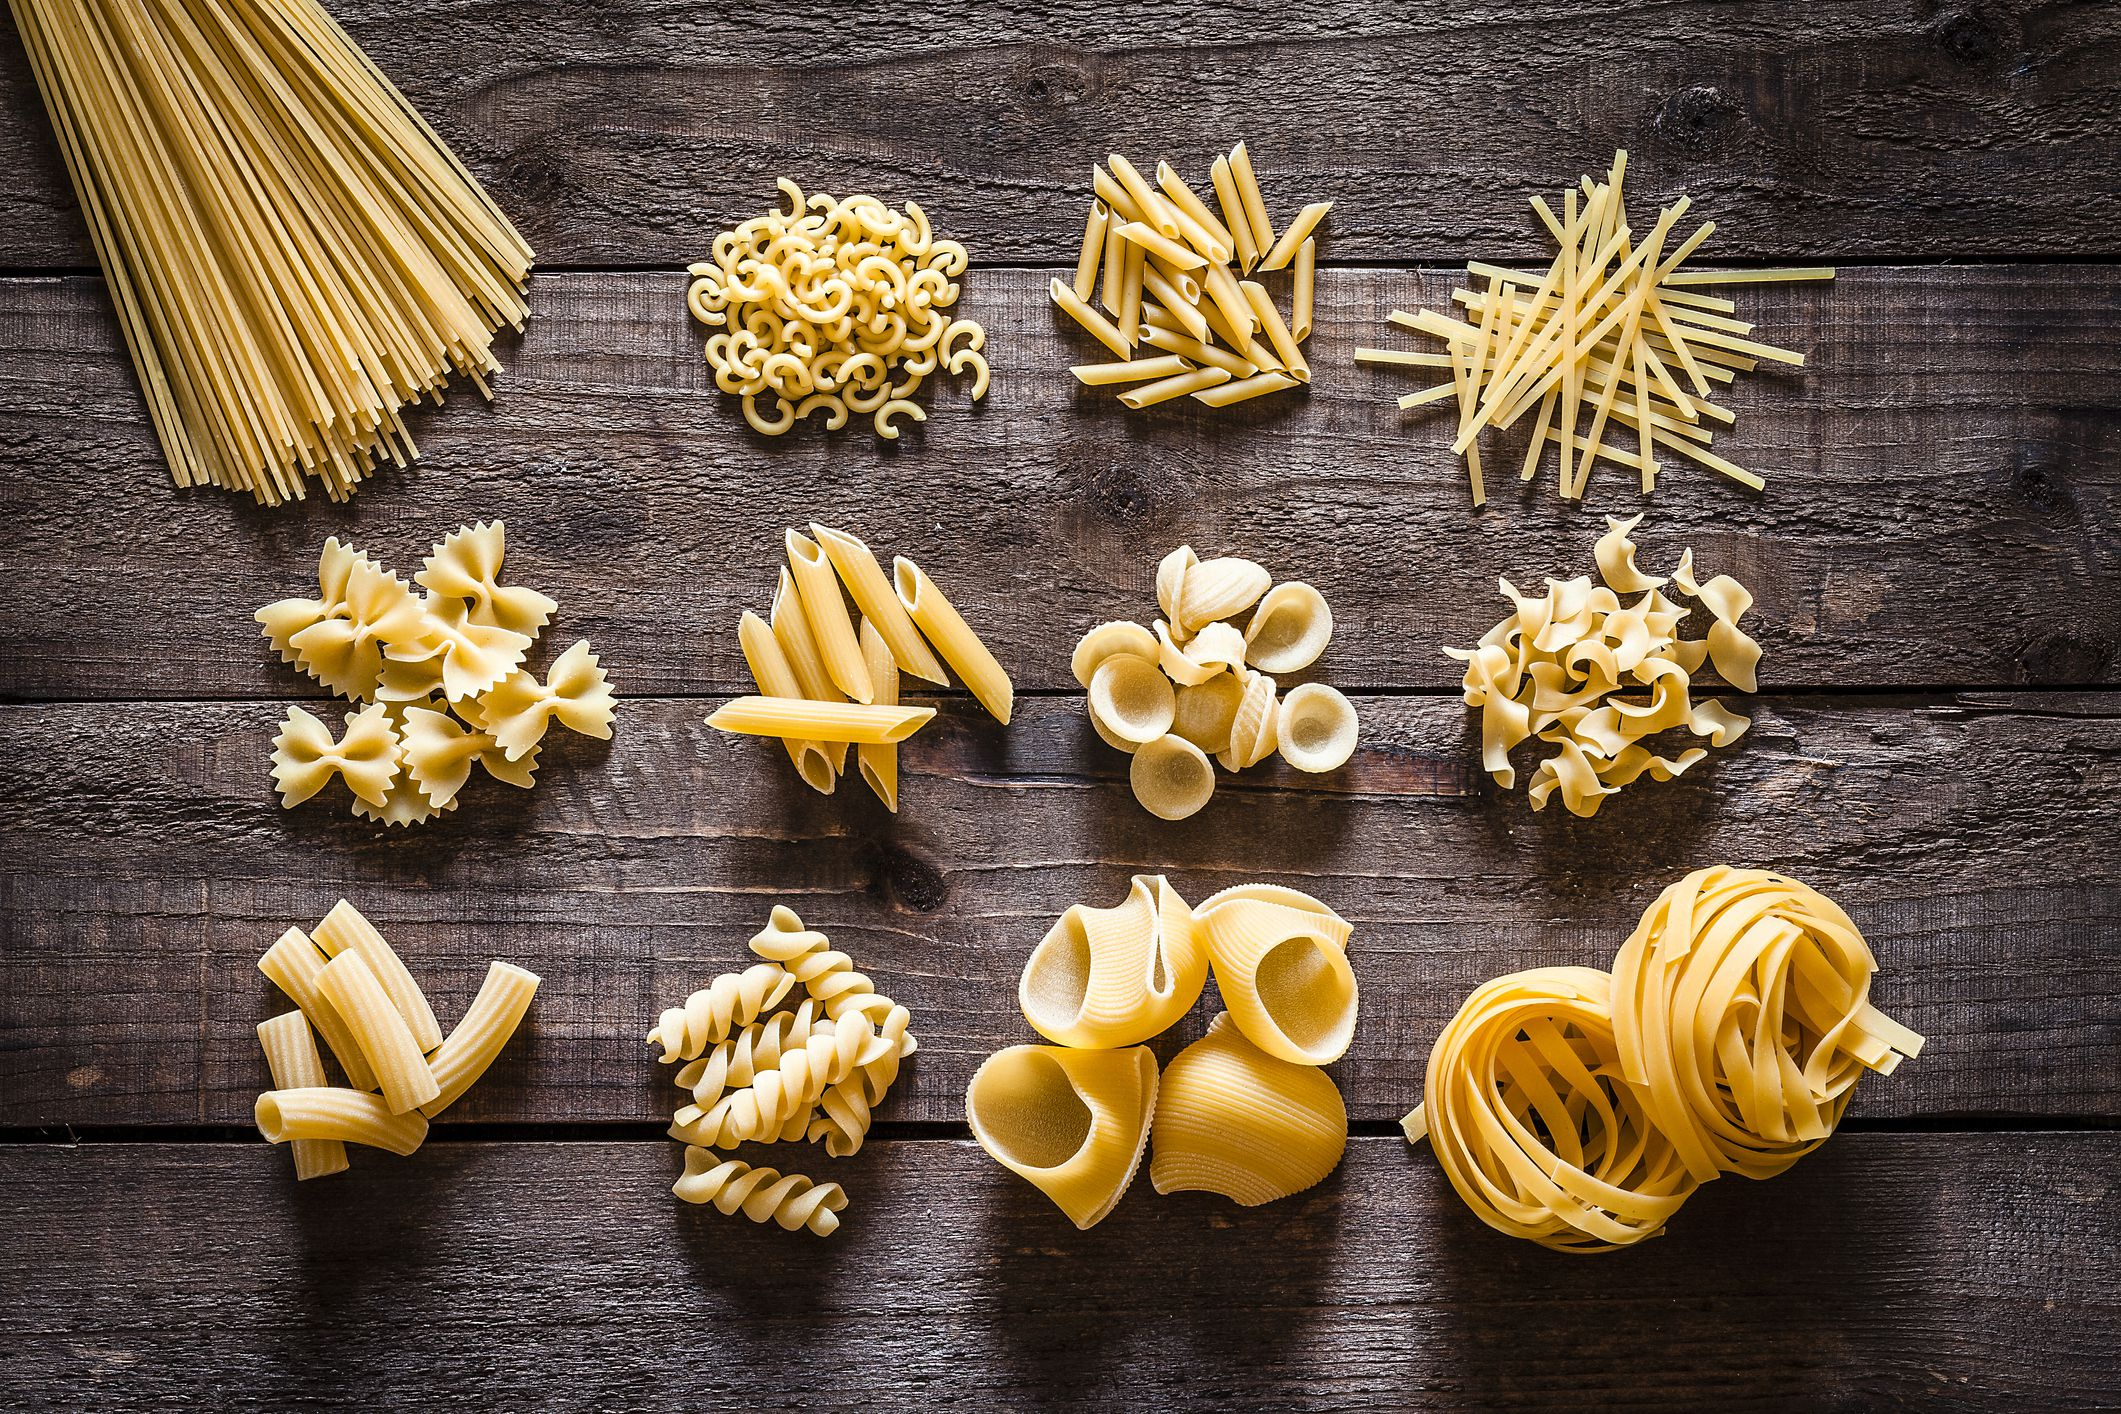 Different varieties of dry pasta on a table.